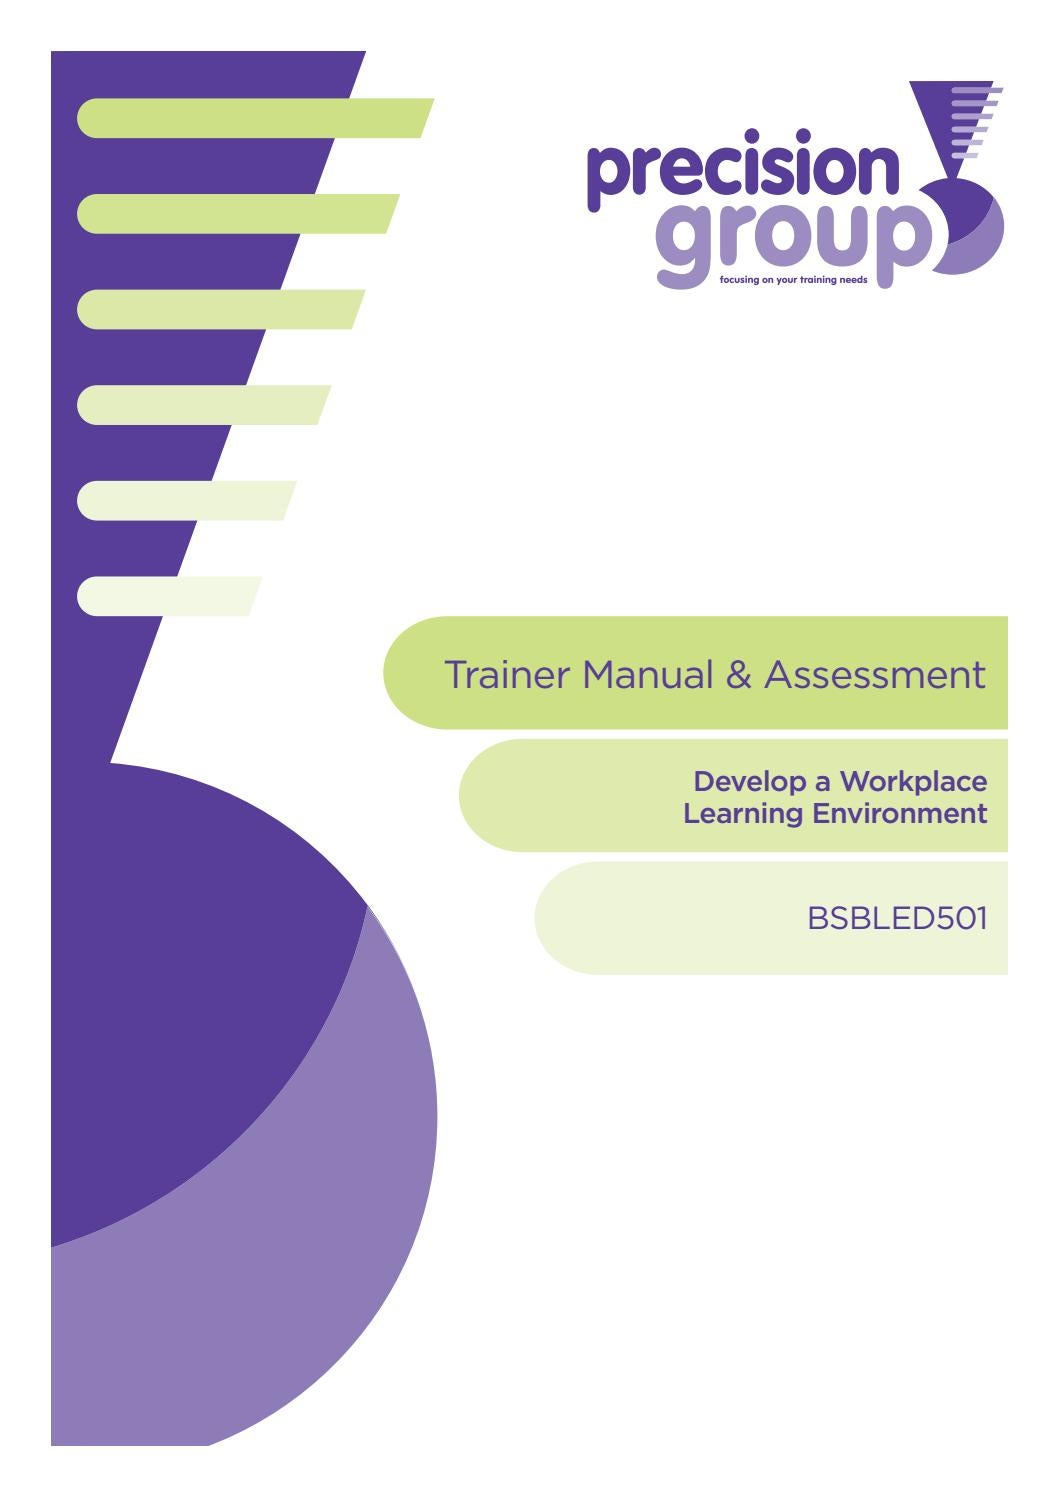 bsbled501a develop a workplace learning environment Bsbled501a develop a workplace learning environment - task 1 learning at work questionnaire name position what led you to your current position in this organisation what tasks do you perform regularly in your role.